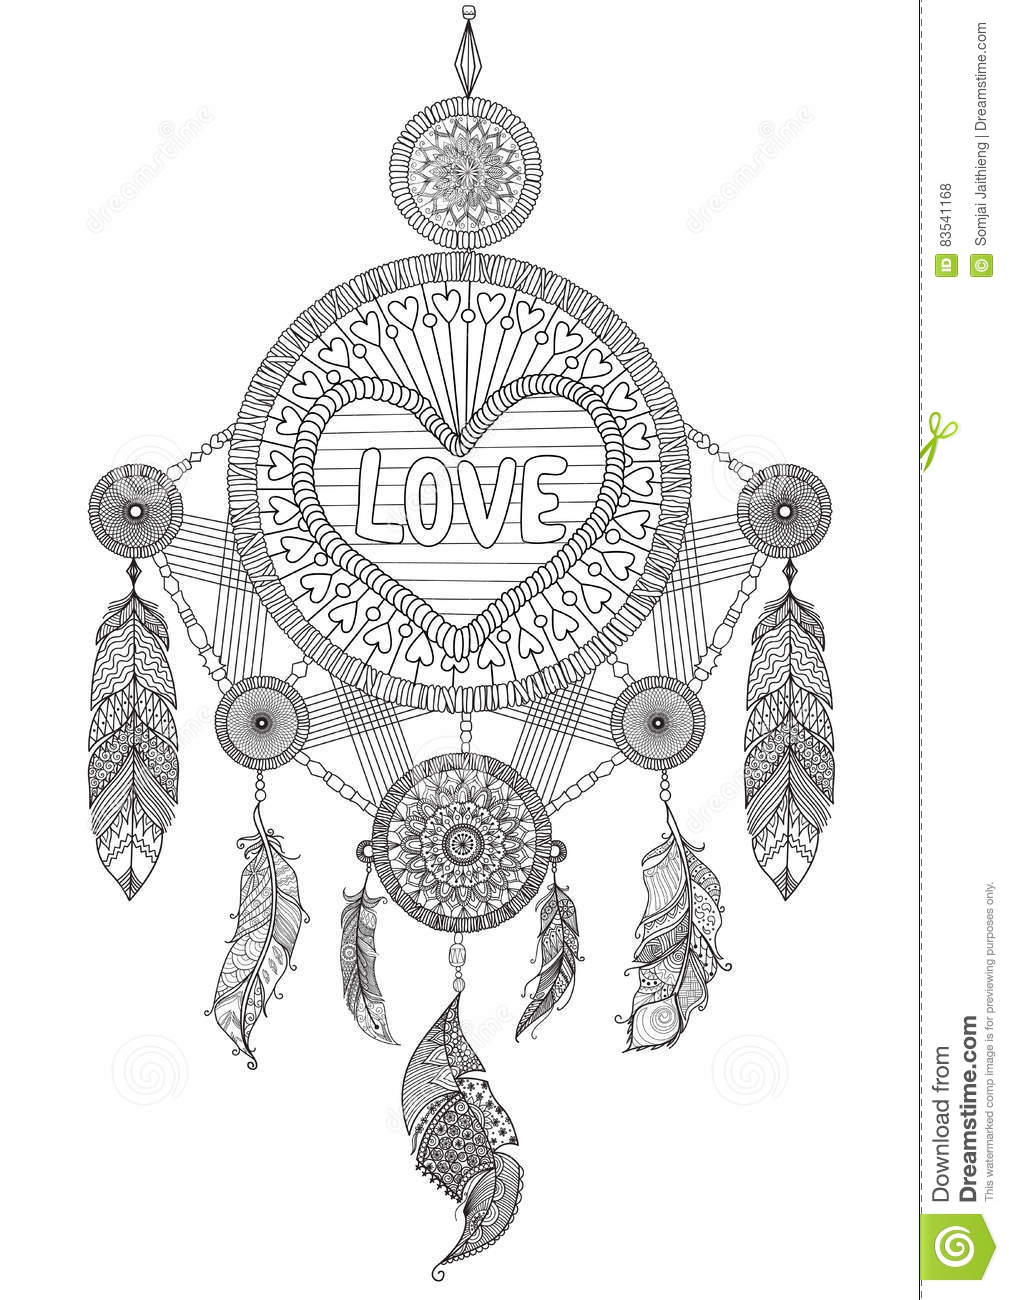 Huskers Cliparts likewise Coloriage A Plume En Forme De Coeur furthermore Noel as well Spring Flower Template in addition 467530005037548342. on lafayette coloring pages